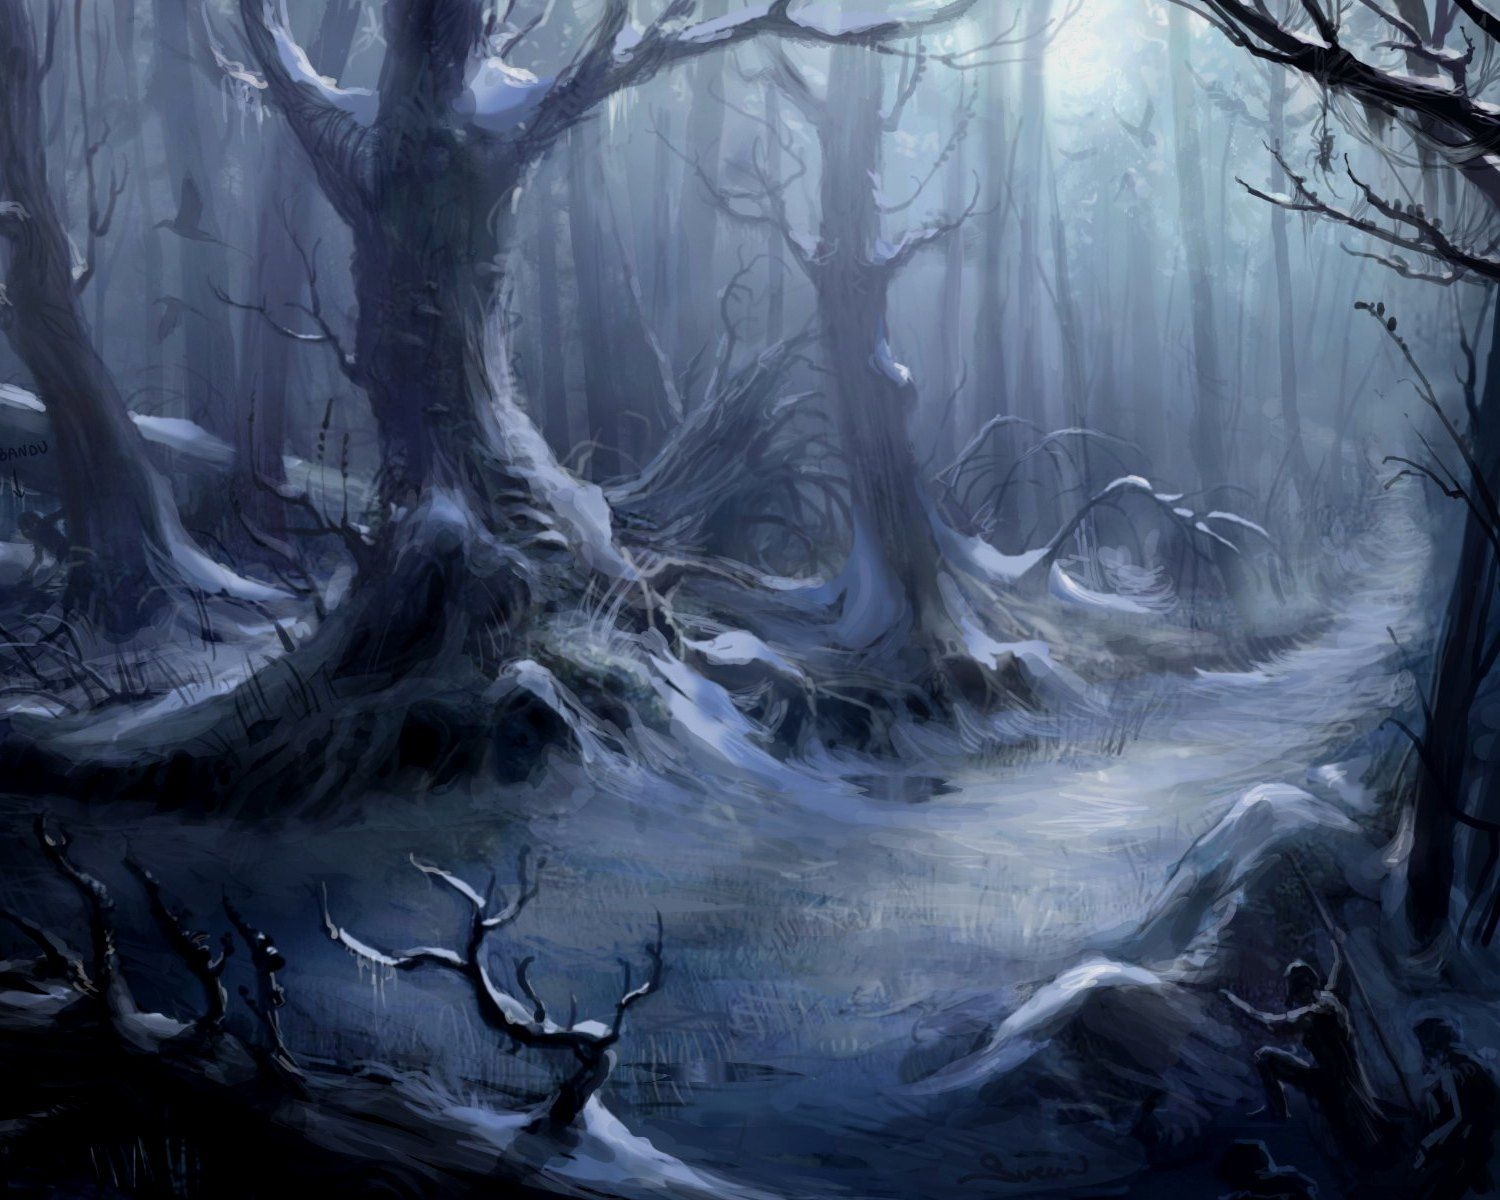 Creepy Forest Background Dark Creepy Wallpaper Background 1500 X 1200 Id 312411 Wallpaper Creepy Backgrounds Scary Backgrounds Scary Woods